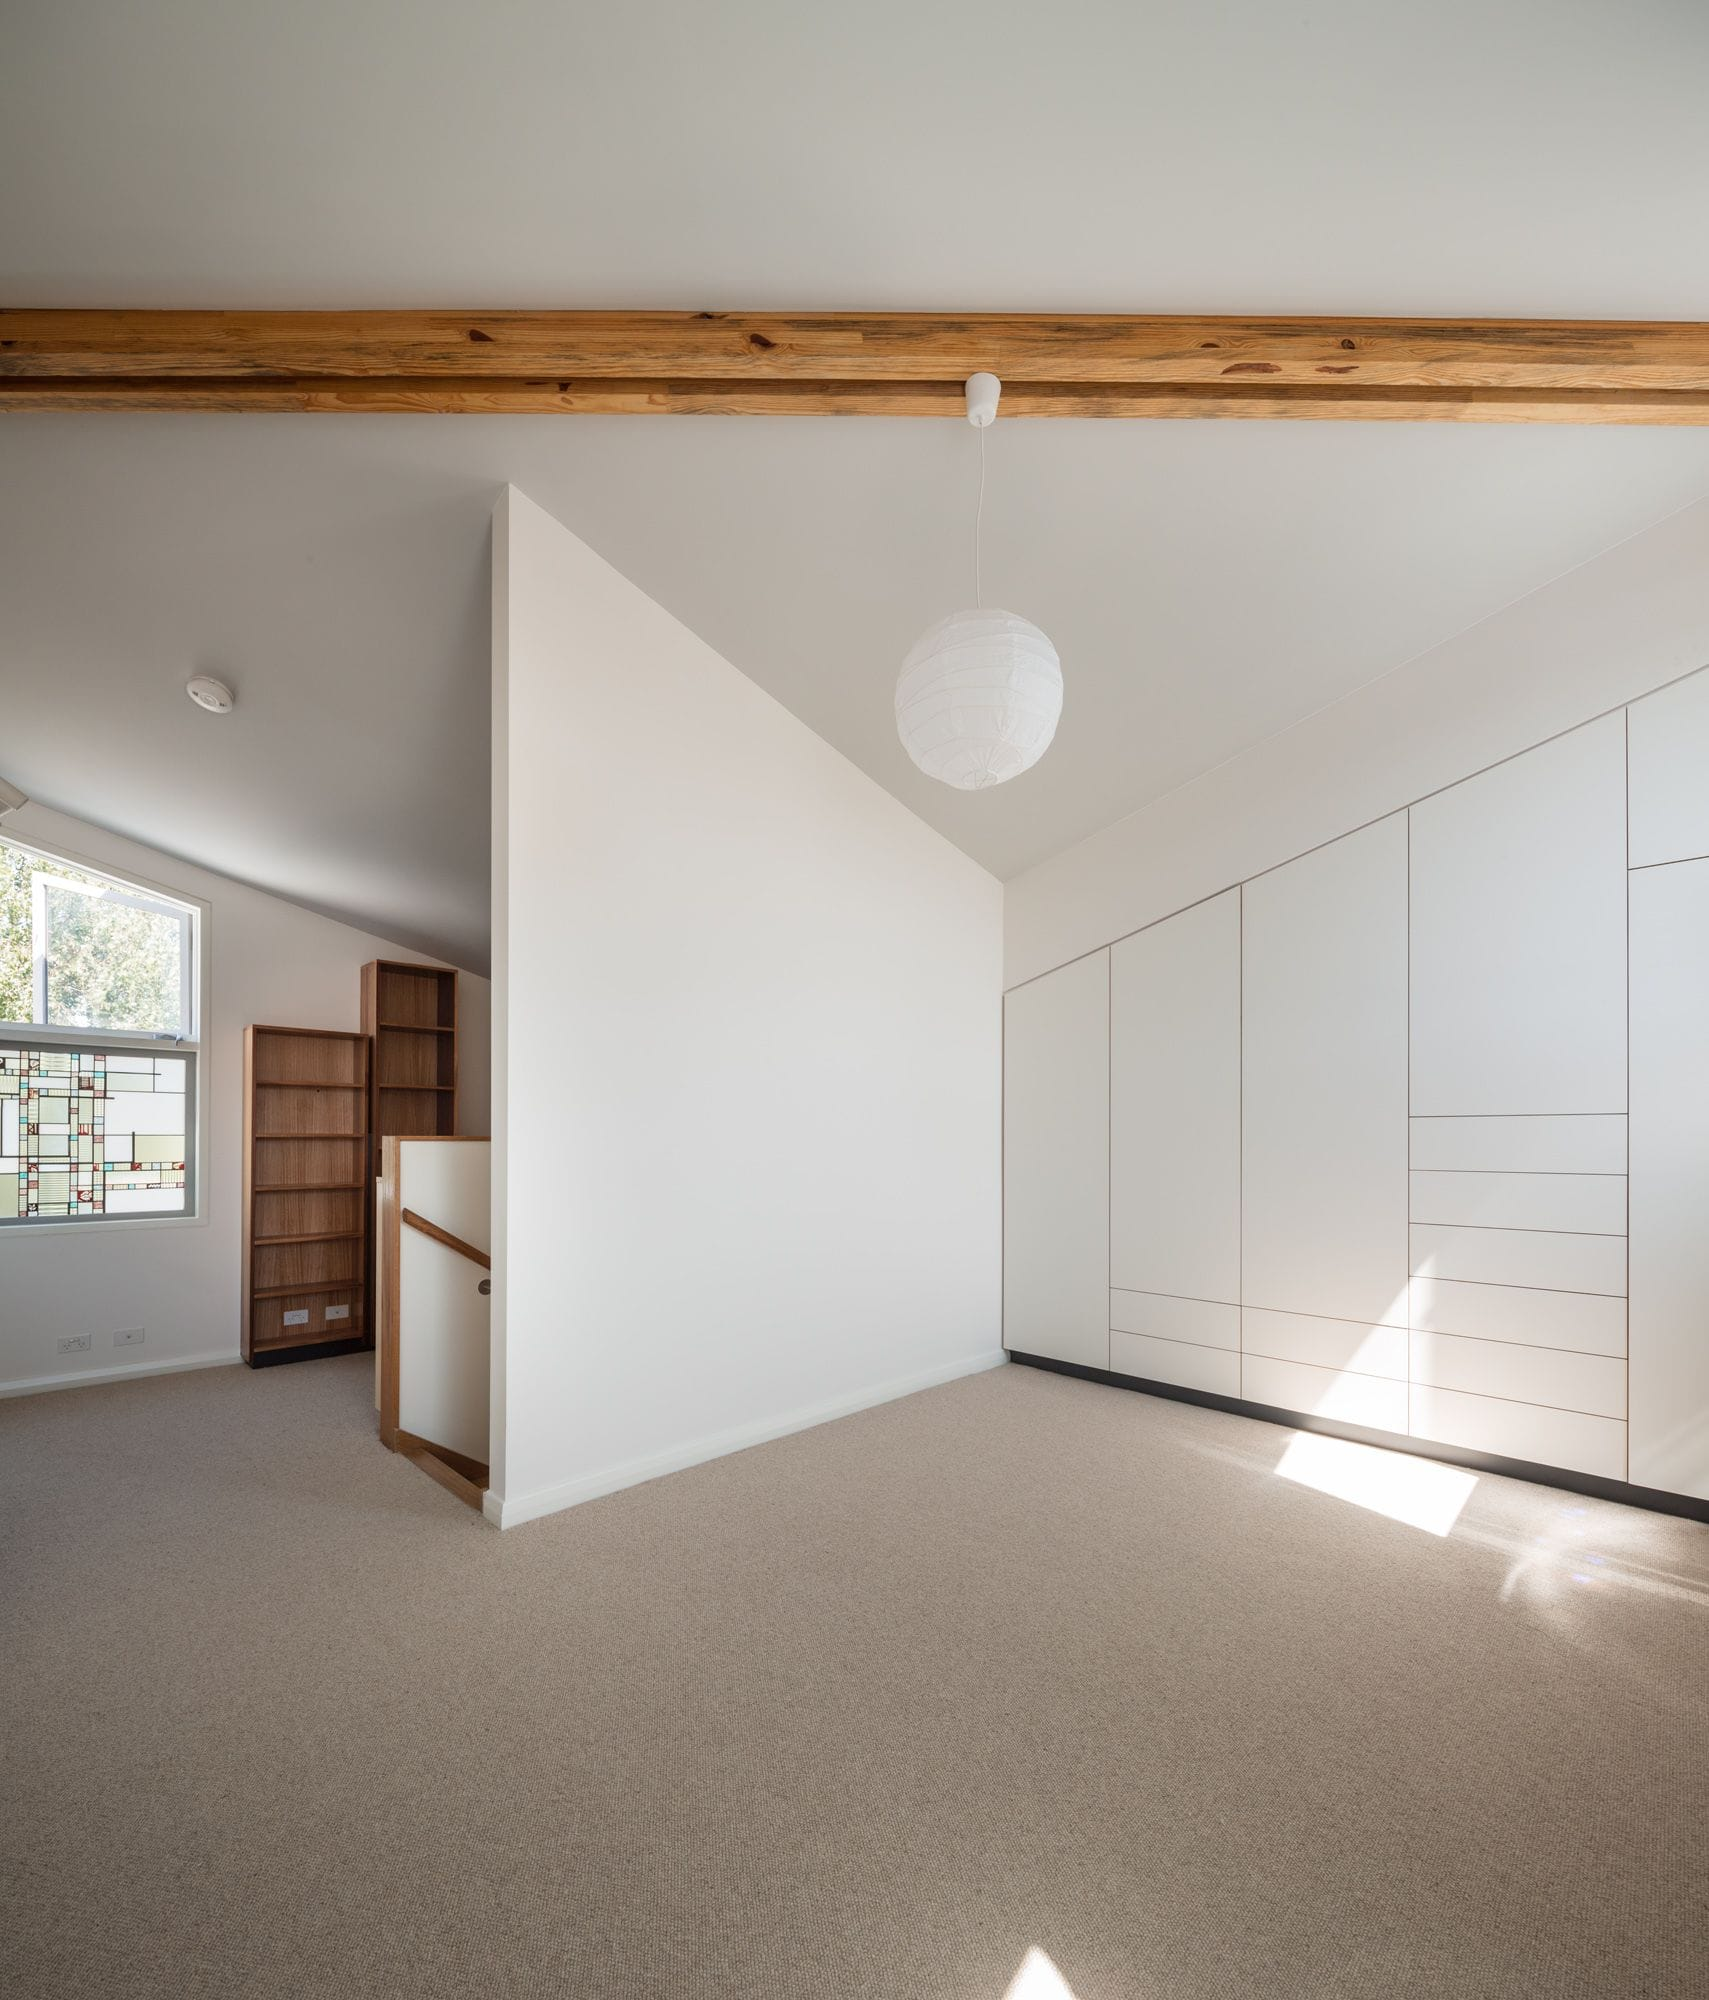 Tower bedroom integrated storage. Daylight archtecture.